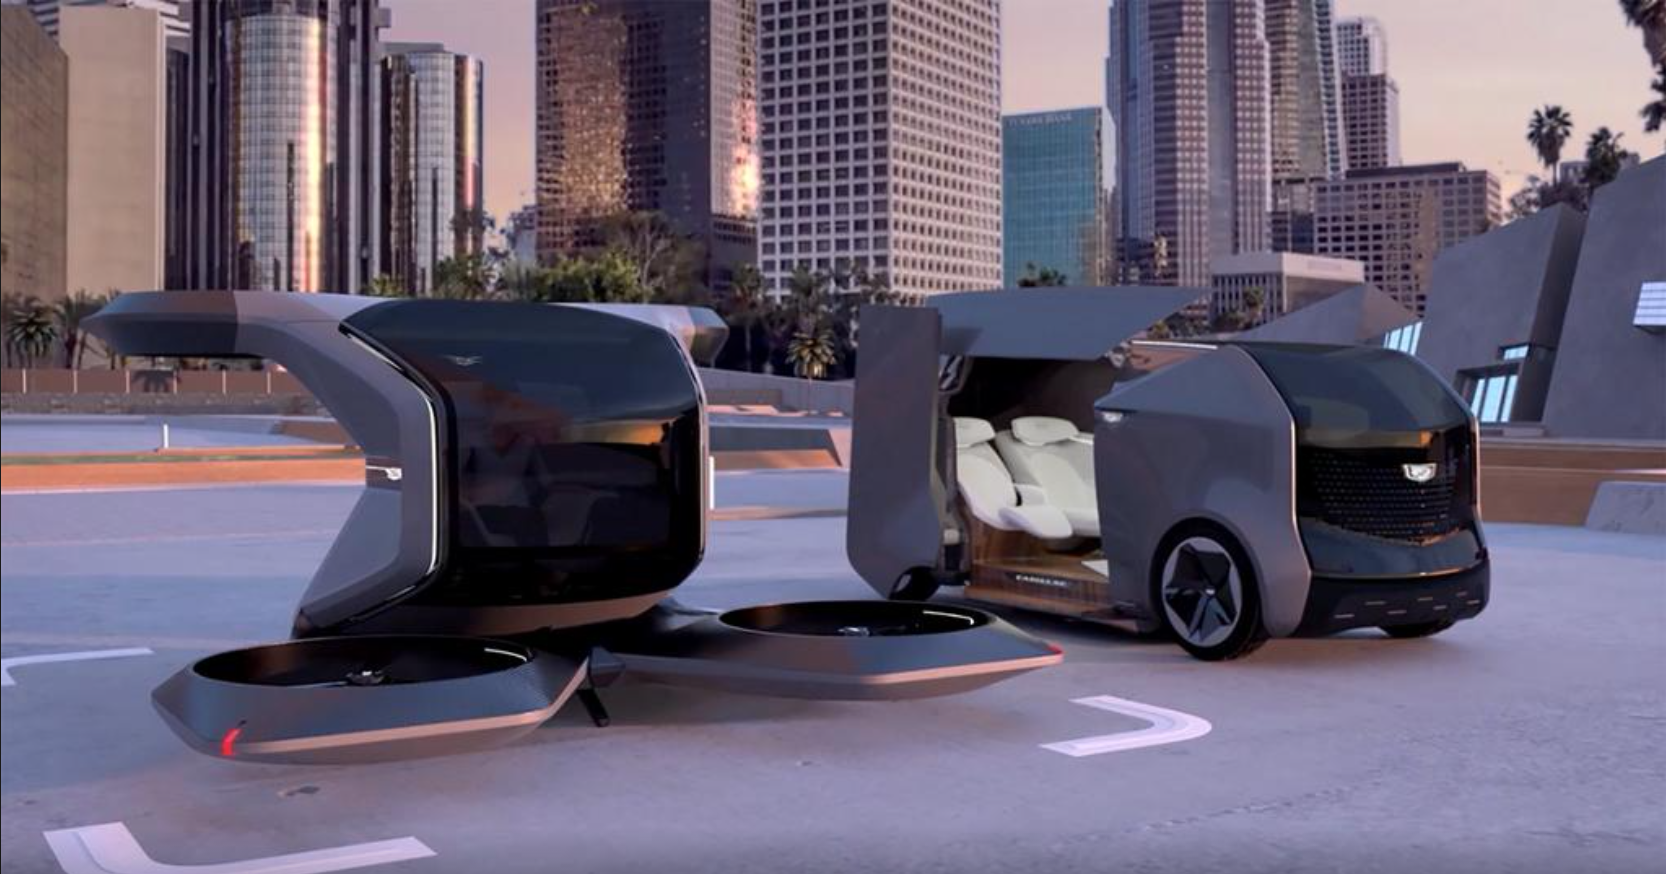 Two futuristic Cadillac concepts, an electric shuttle and an autonomous vertical take-off and landing (VTOL) drone, are seen in a still image from video presented by General Motors (GM) at the 2021 CES show on January 12, 2021.